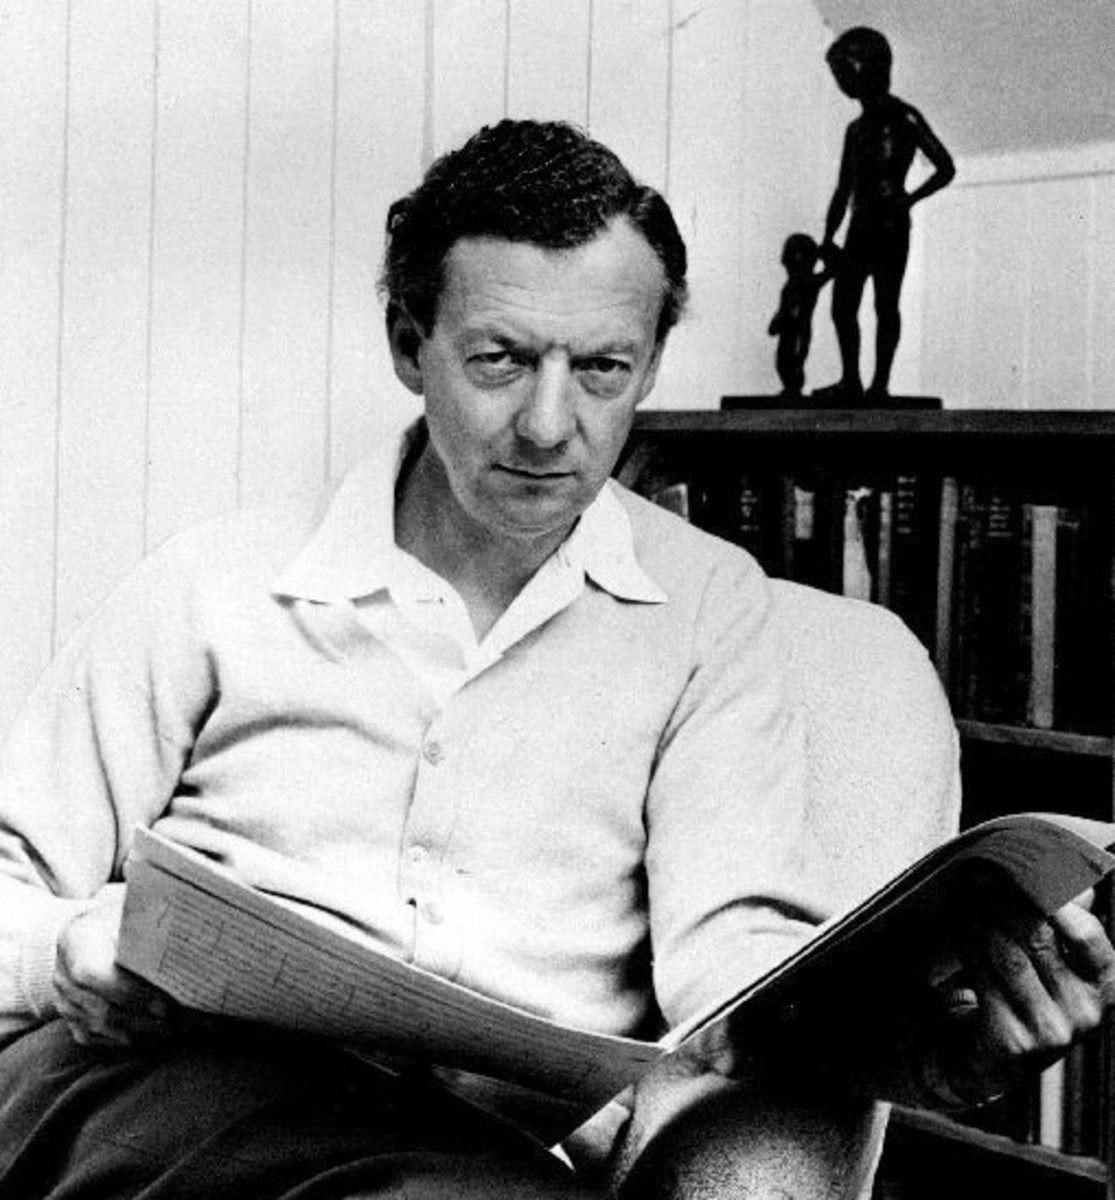 Photgraph of Britten taken in 1968.